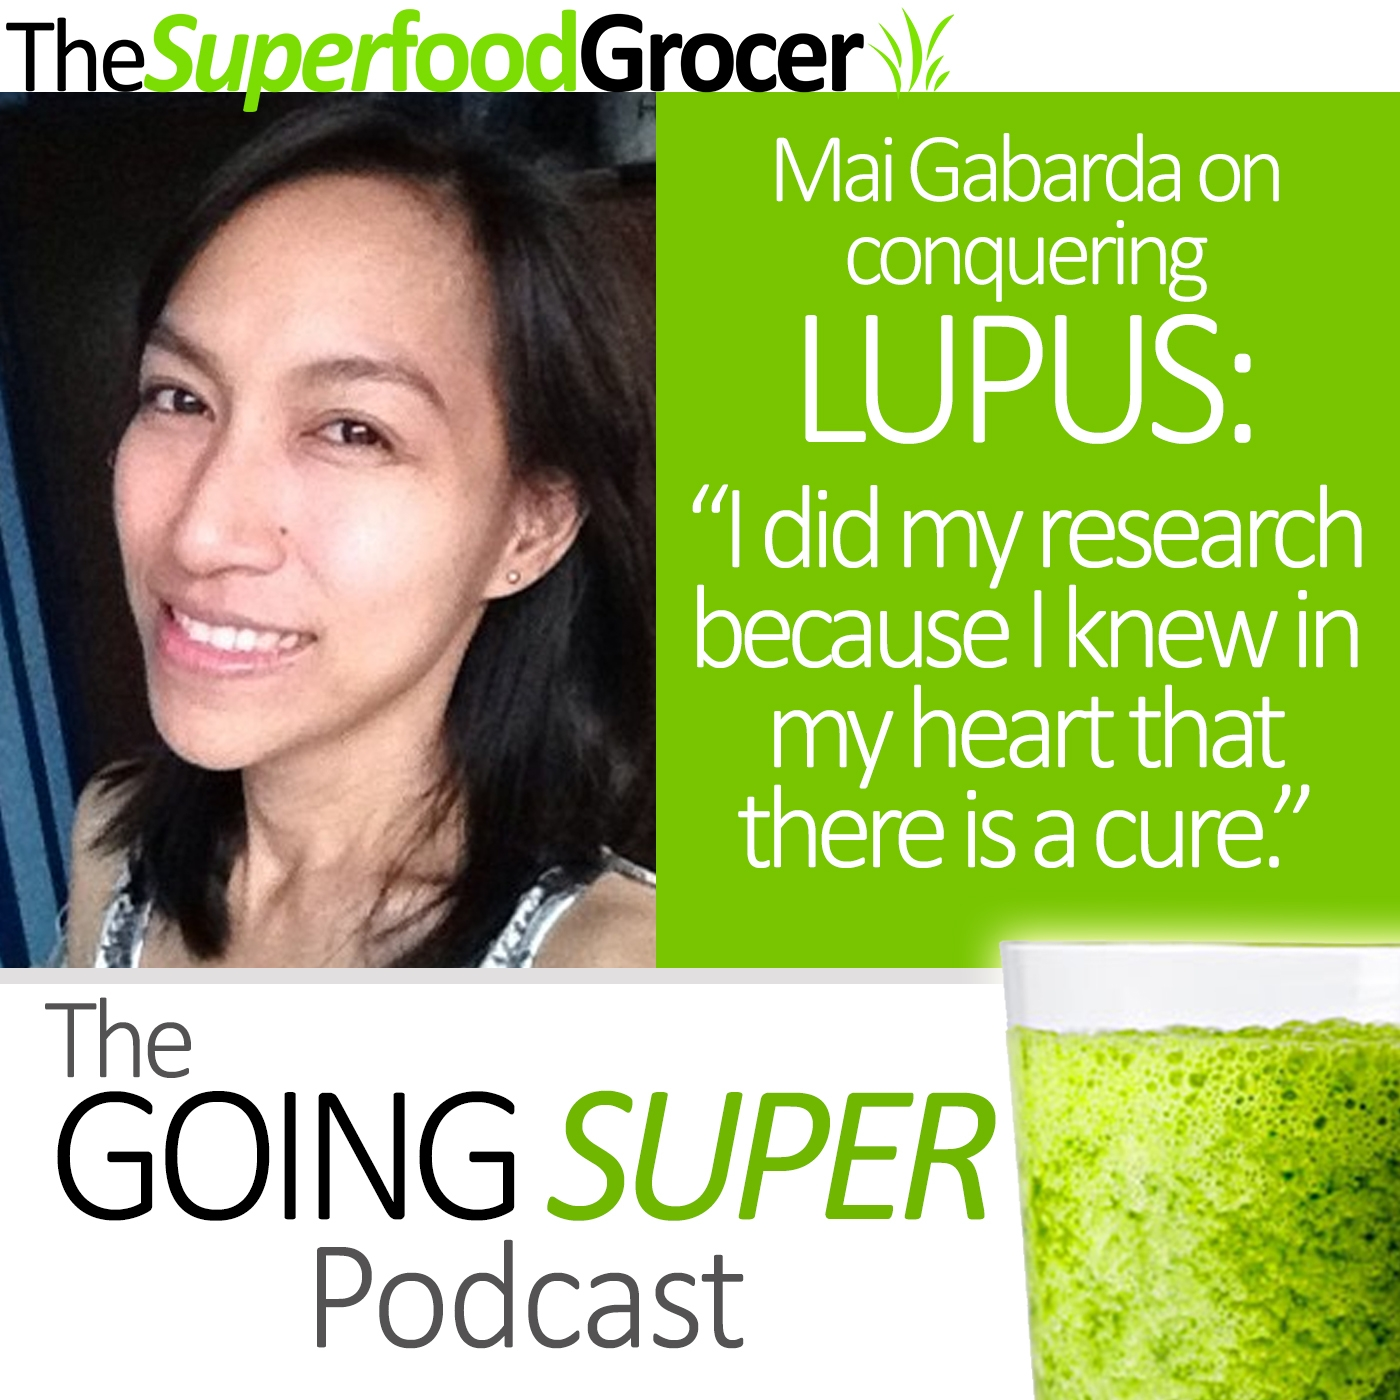 EP01: Overcoming Lupus through a Plant Based Diet with Mai Gabarda